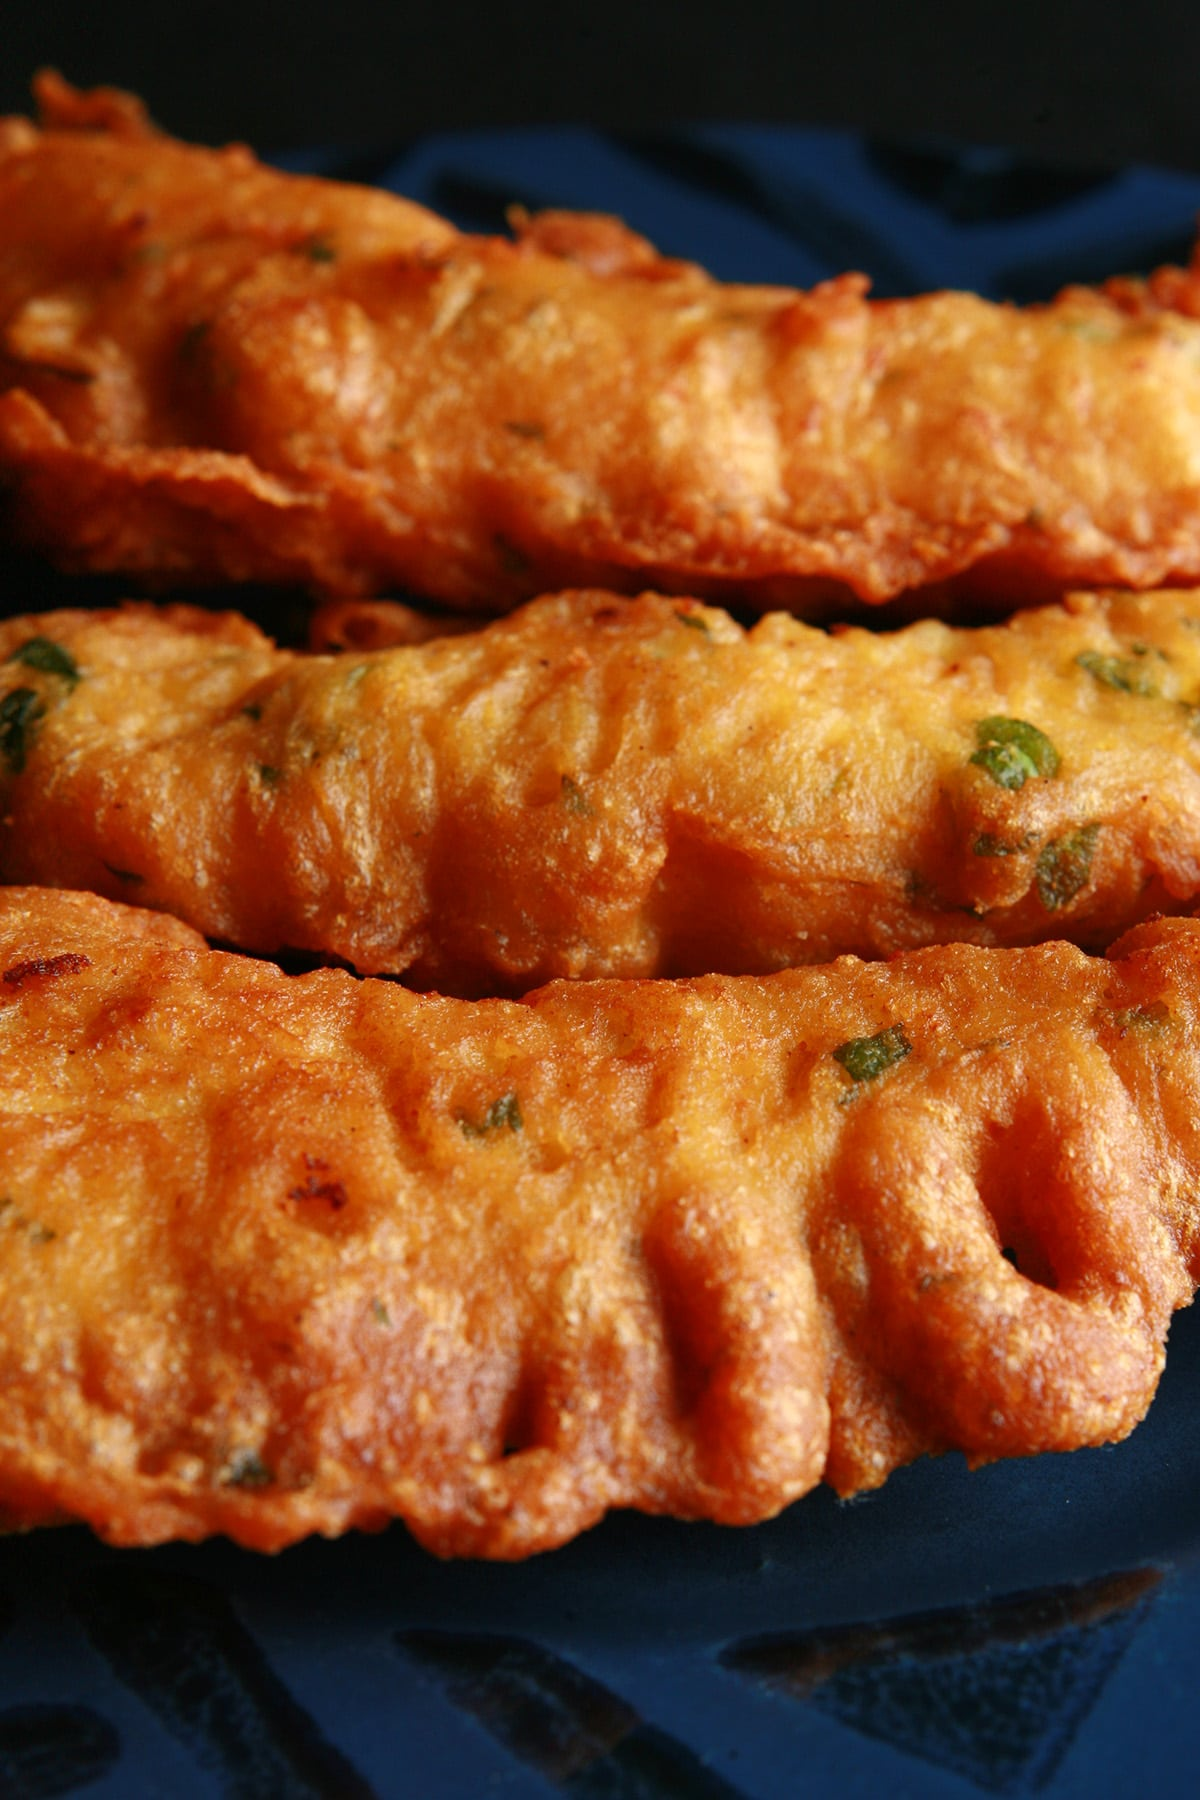 3 long fingers of chicken pakora on a blue plate. Bits of cilantro are visible in the fried batter.